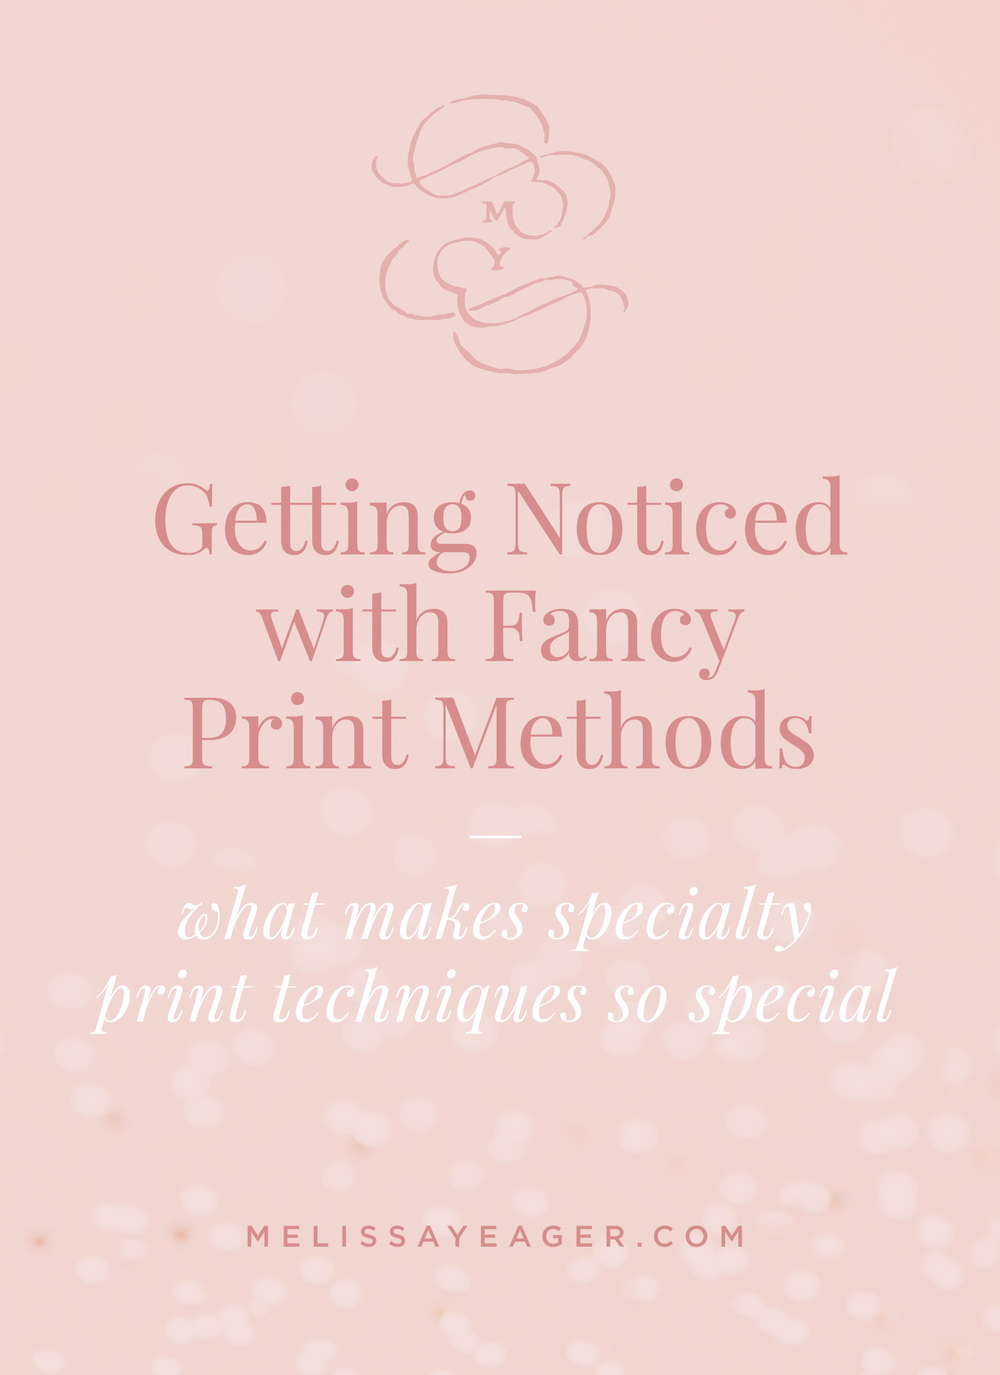 Getting Noticed with Fancy Print Methods - what makes specialty print techniques so special